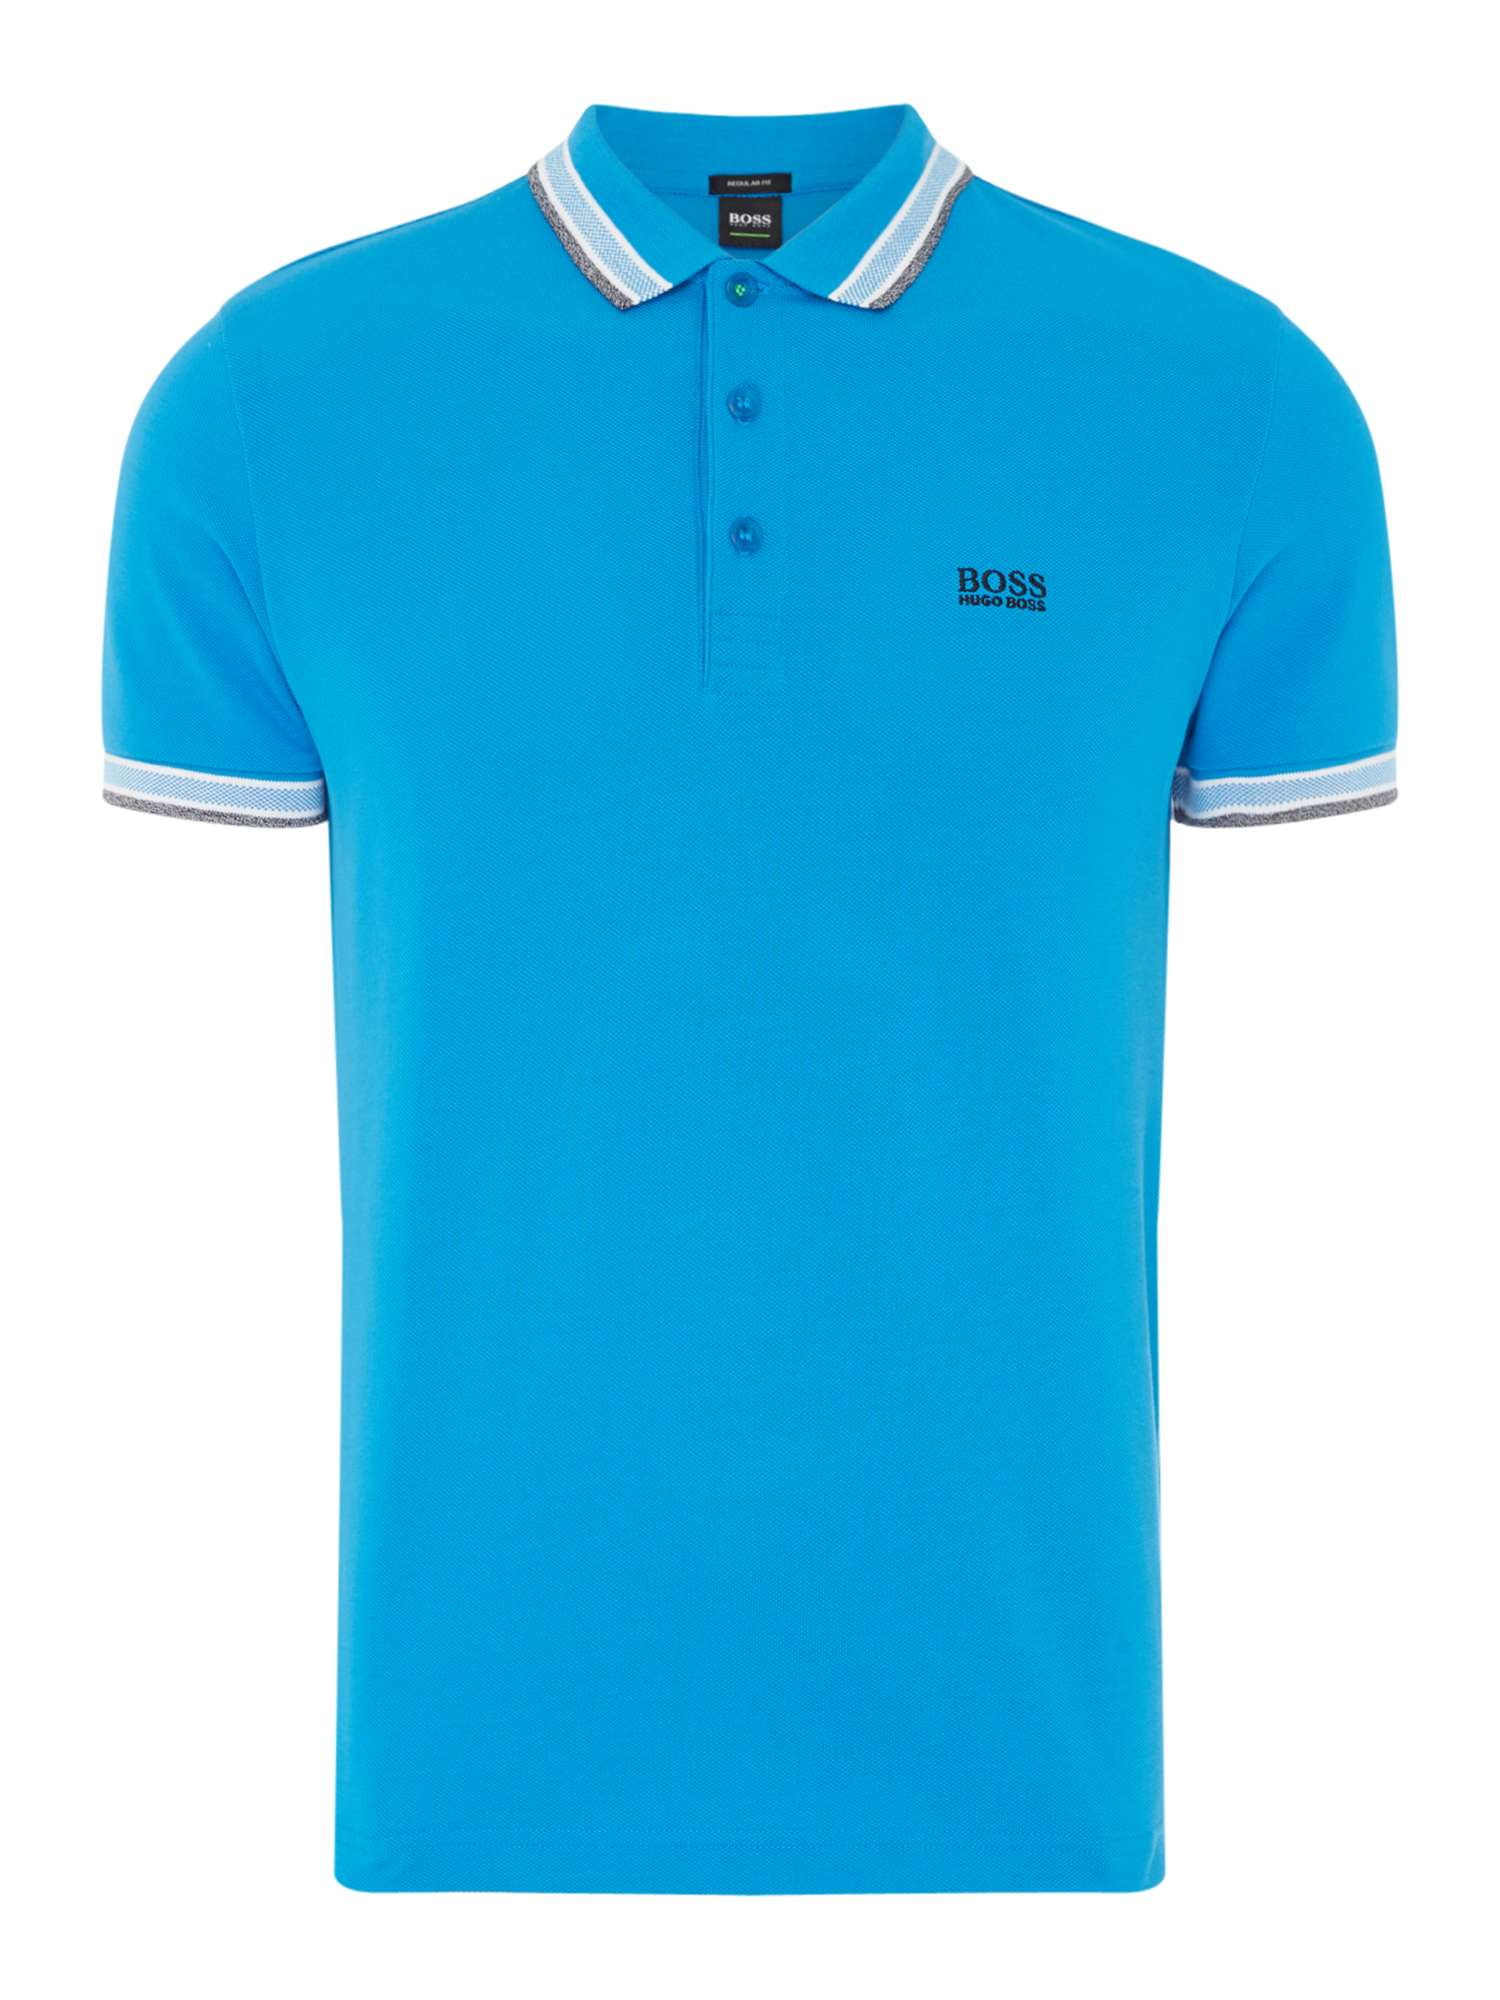 Hugo Boss Paddy Short Sleeve Polo - House of Fraser